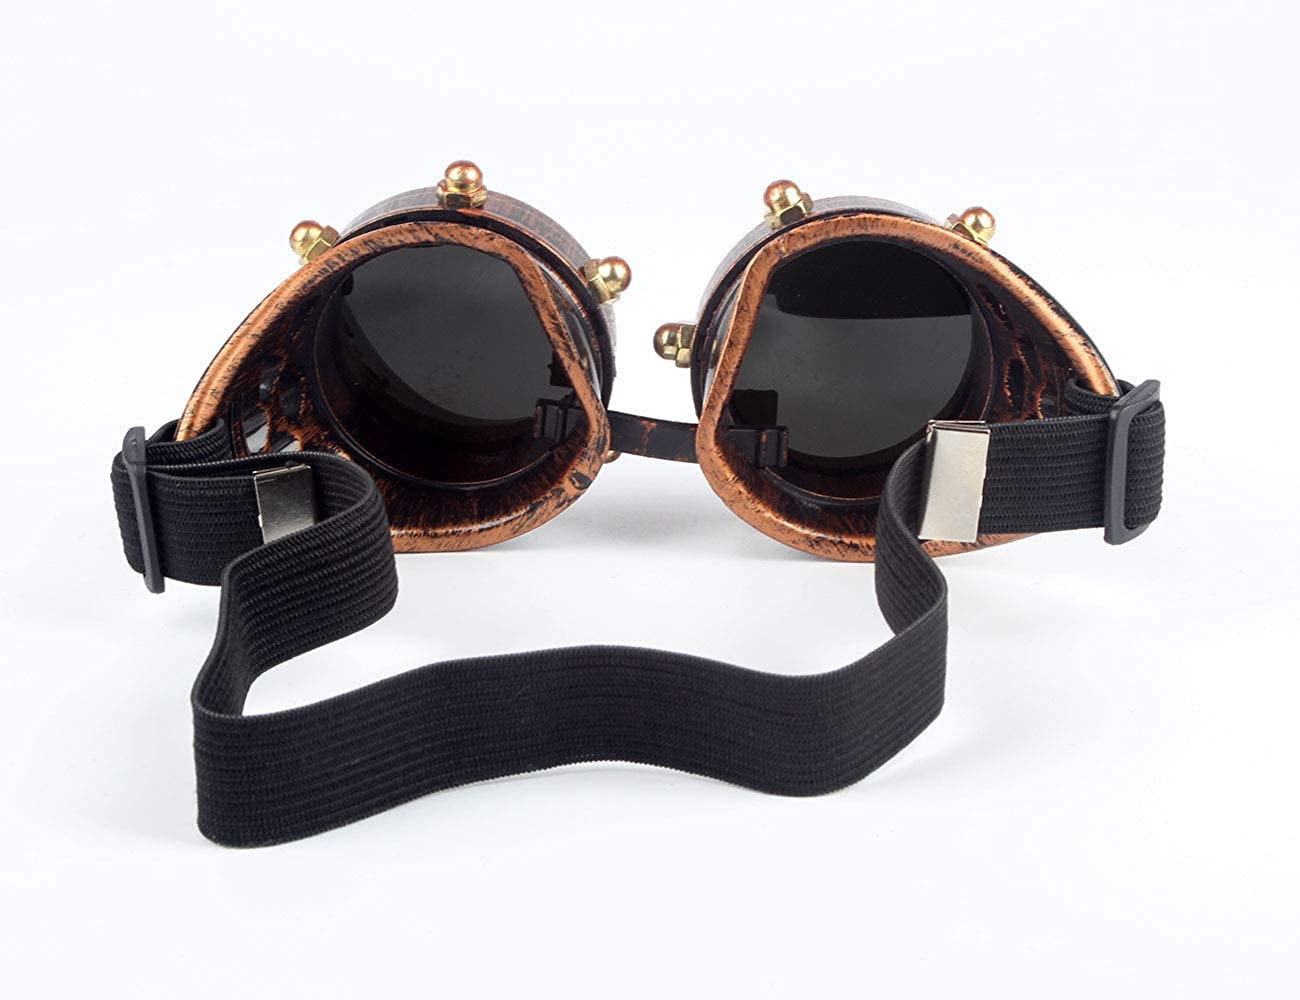 OMG/_Shop Steampunk Goggles Cyber Welding Goth Cosplay Vintage Goggles Rustic